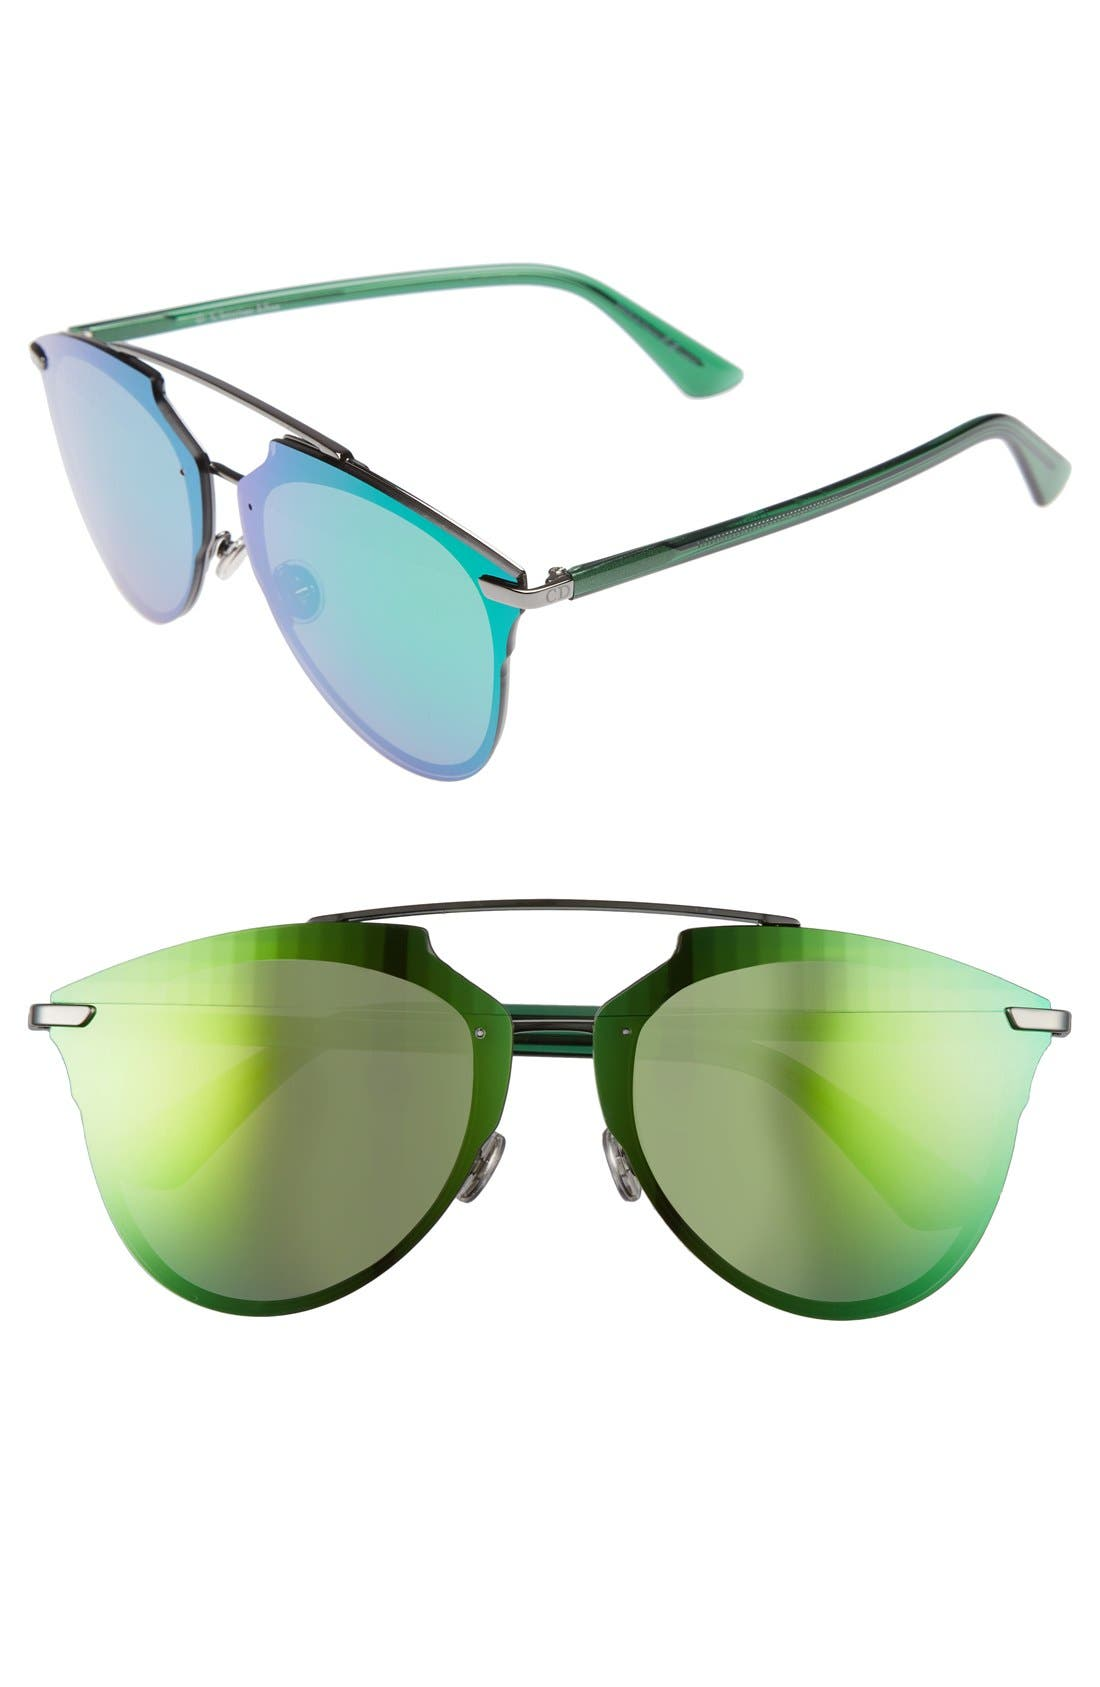 Dior Reflected Prism 63mm Oversize Mirrored Brow Bar Sunglasses